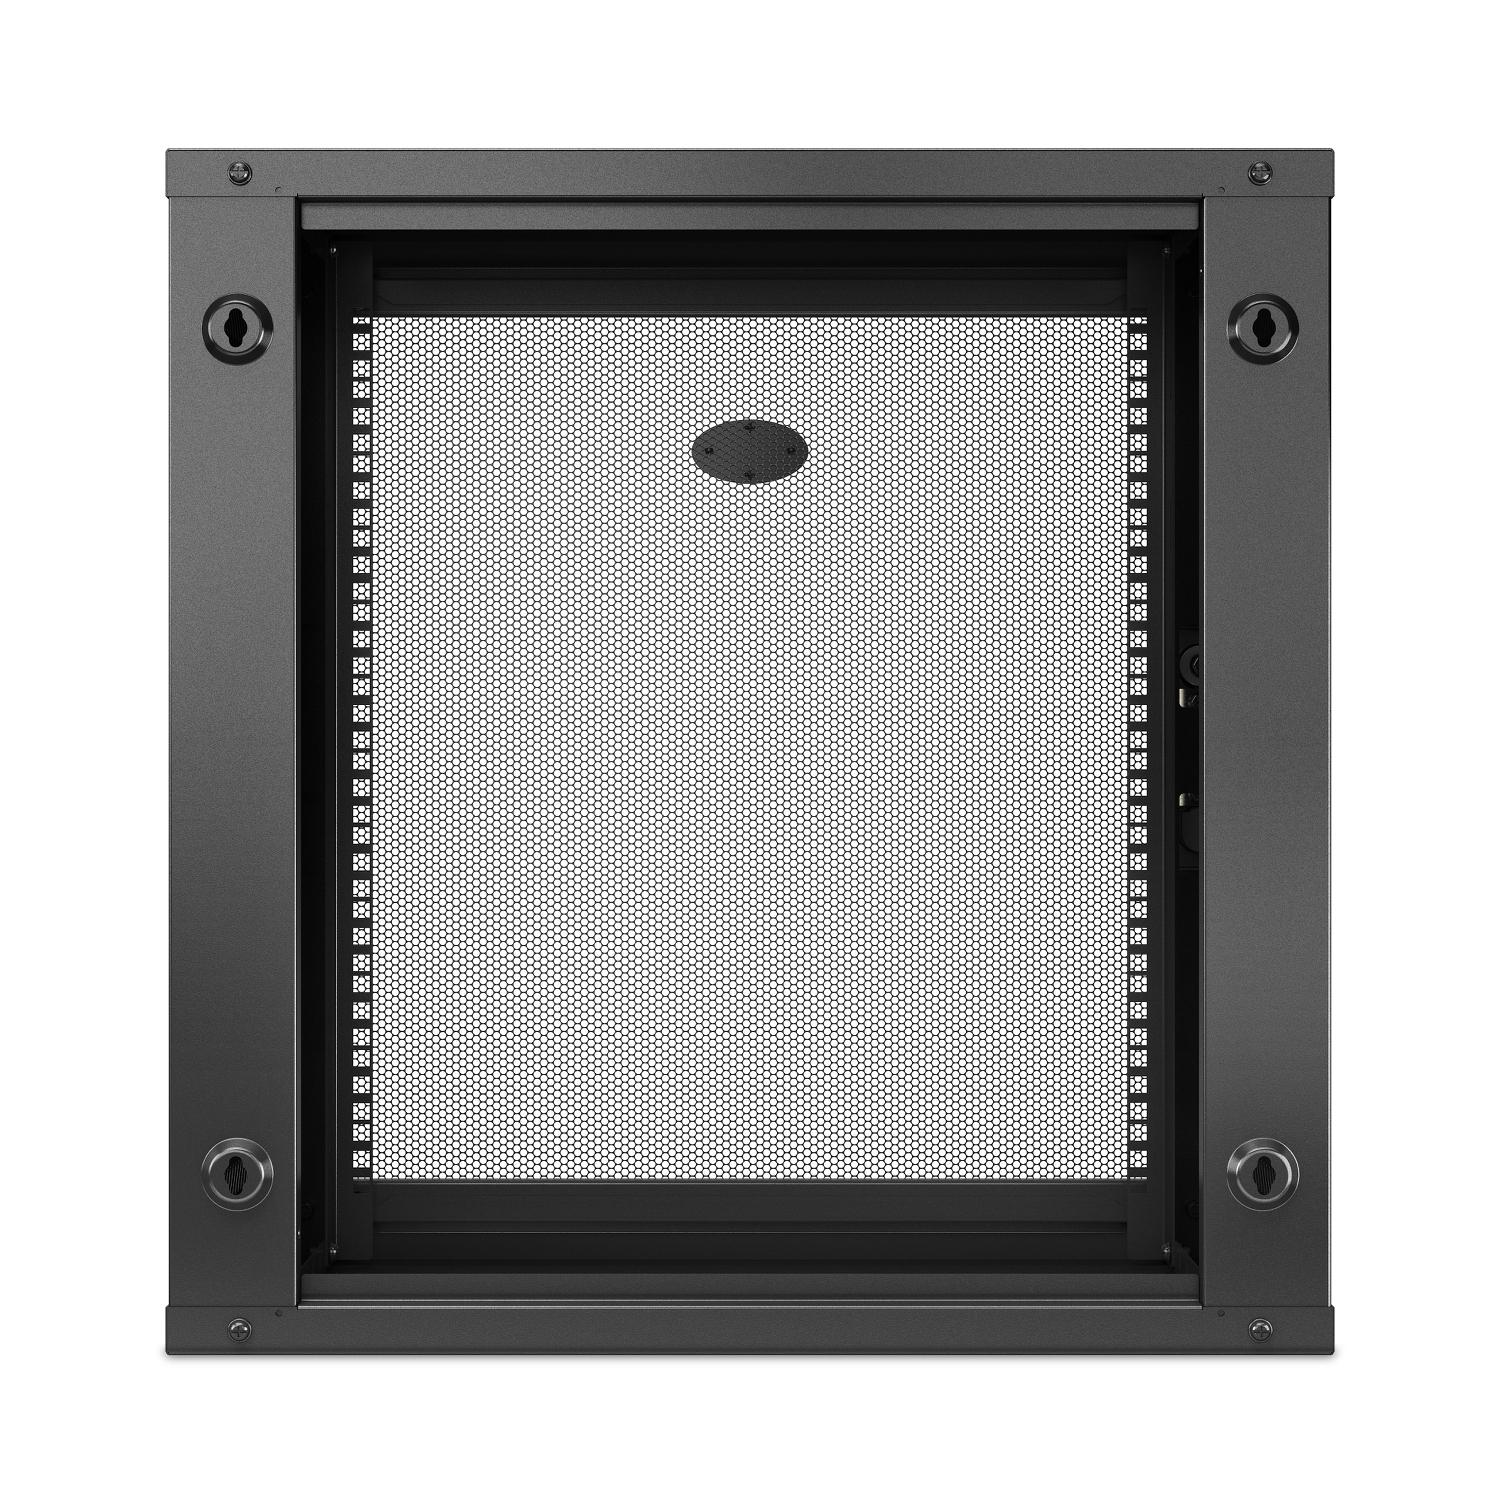 NetShelter WX 12U Single Hinged Wall-mount Enclosure